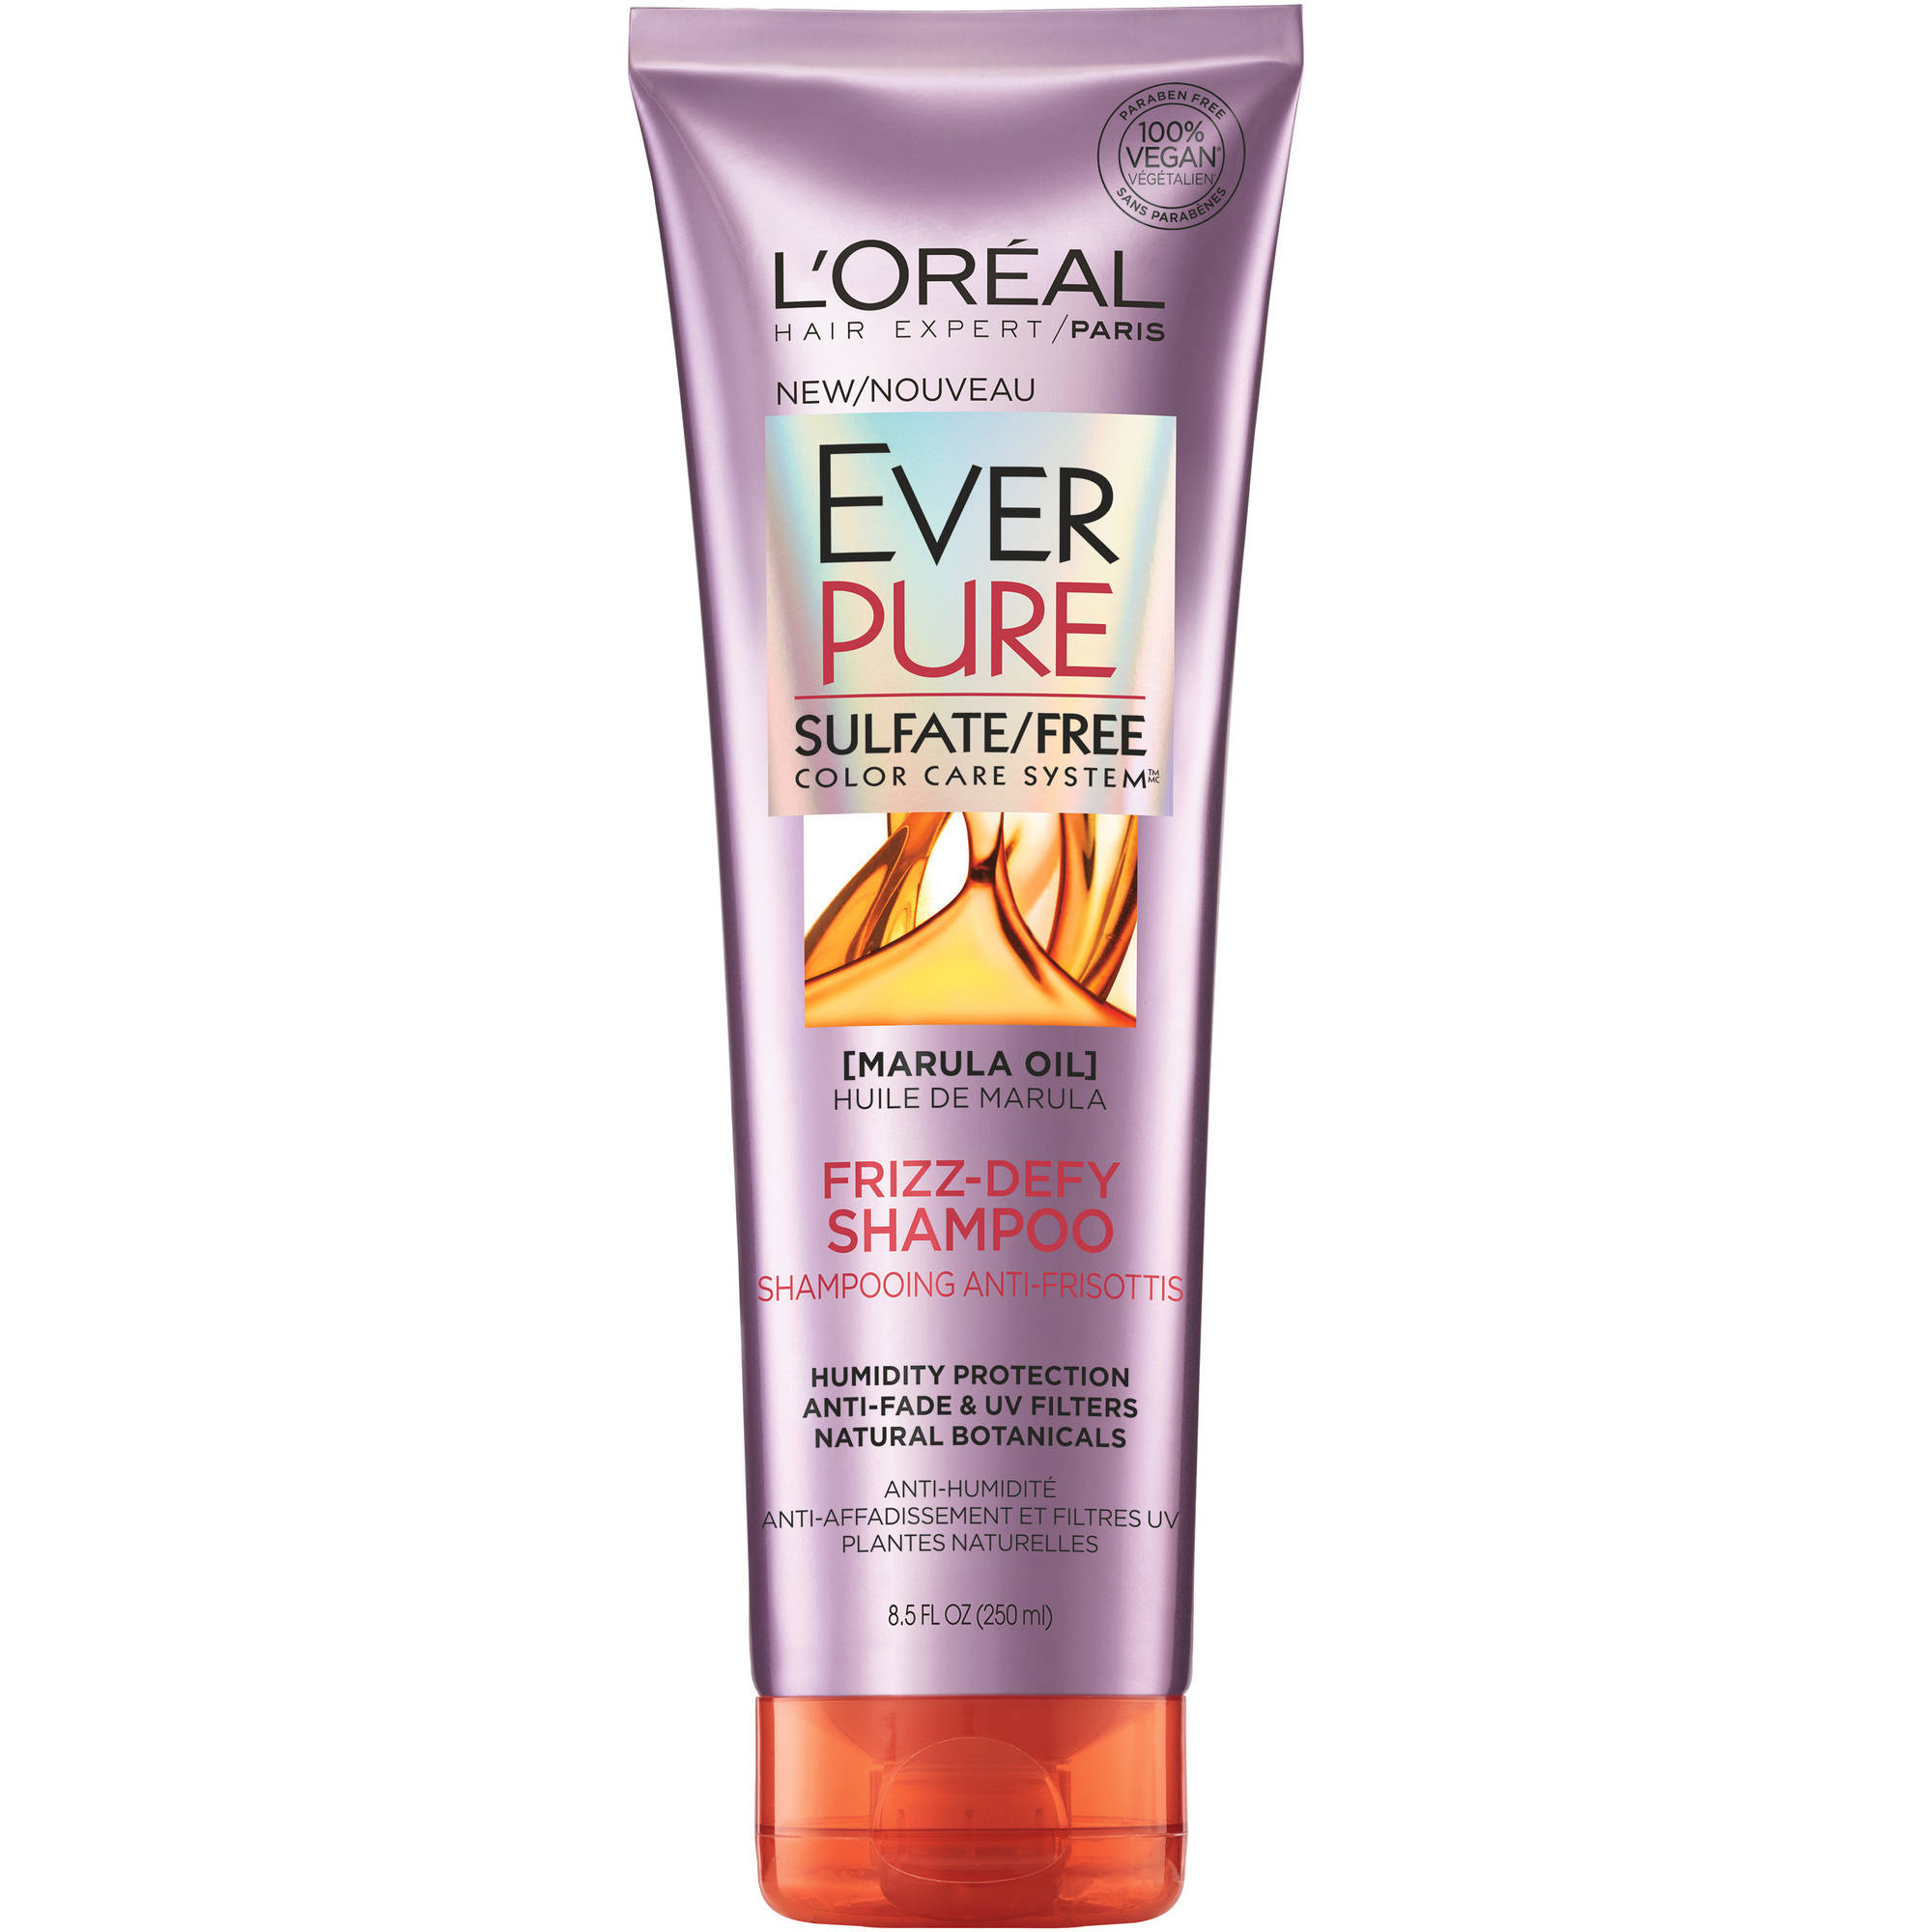 L'Oreal Paris EverPure Frizz Defy Shampoo, 8.5 Fl Oz